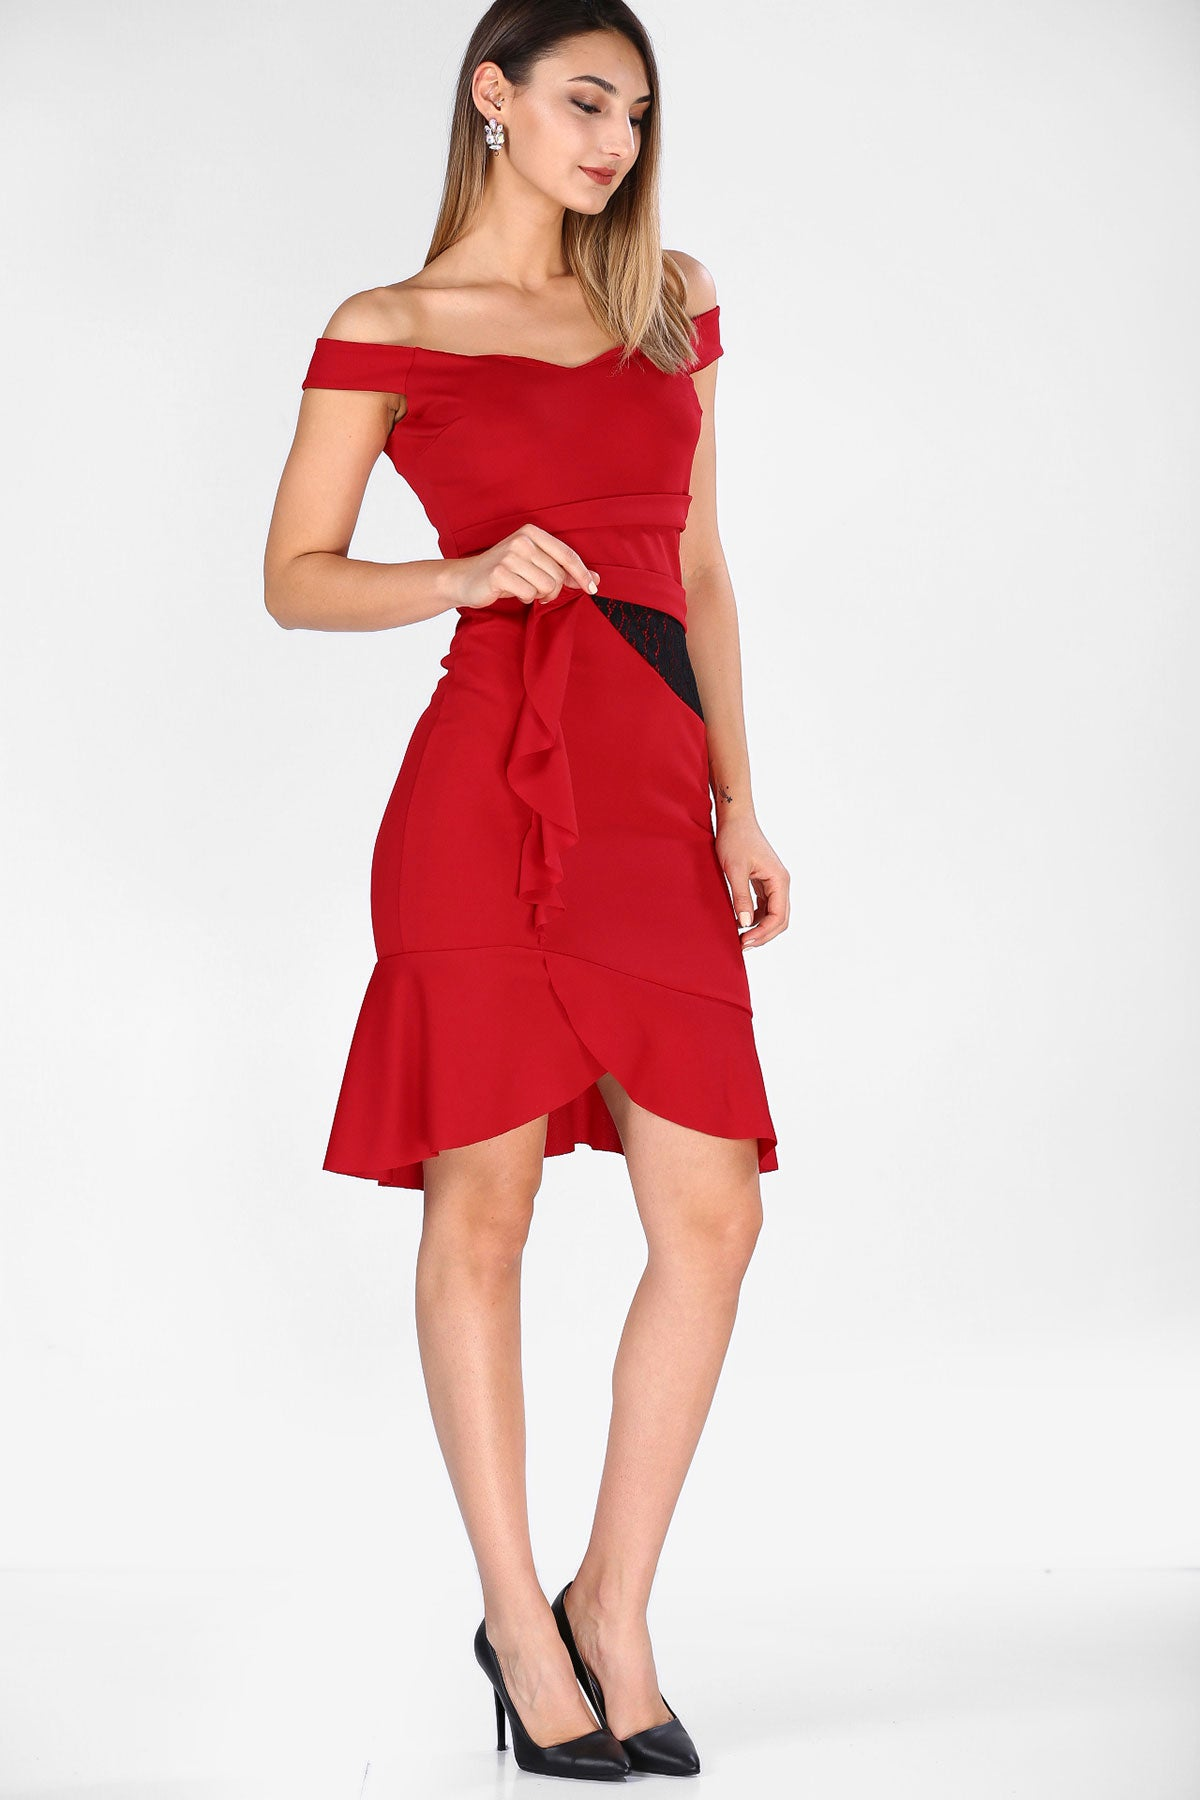 Women's Frilled Red Dress - Pat&Sons